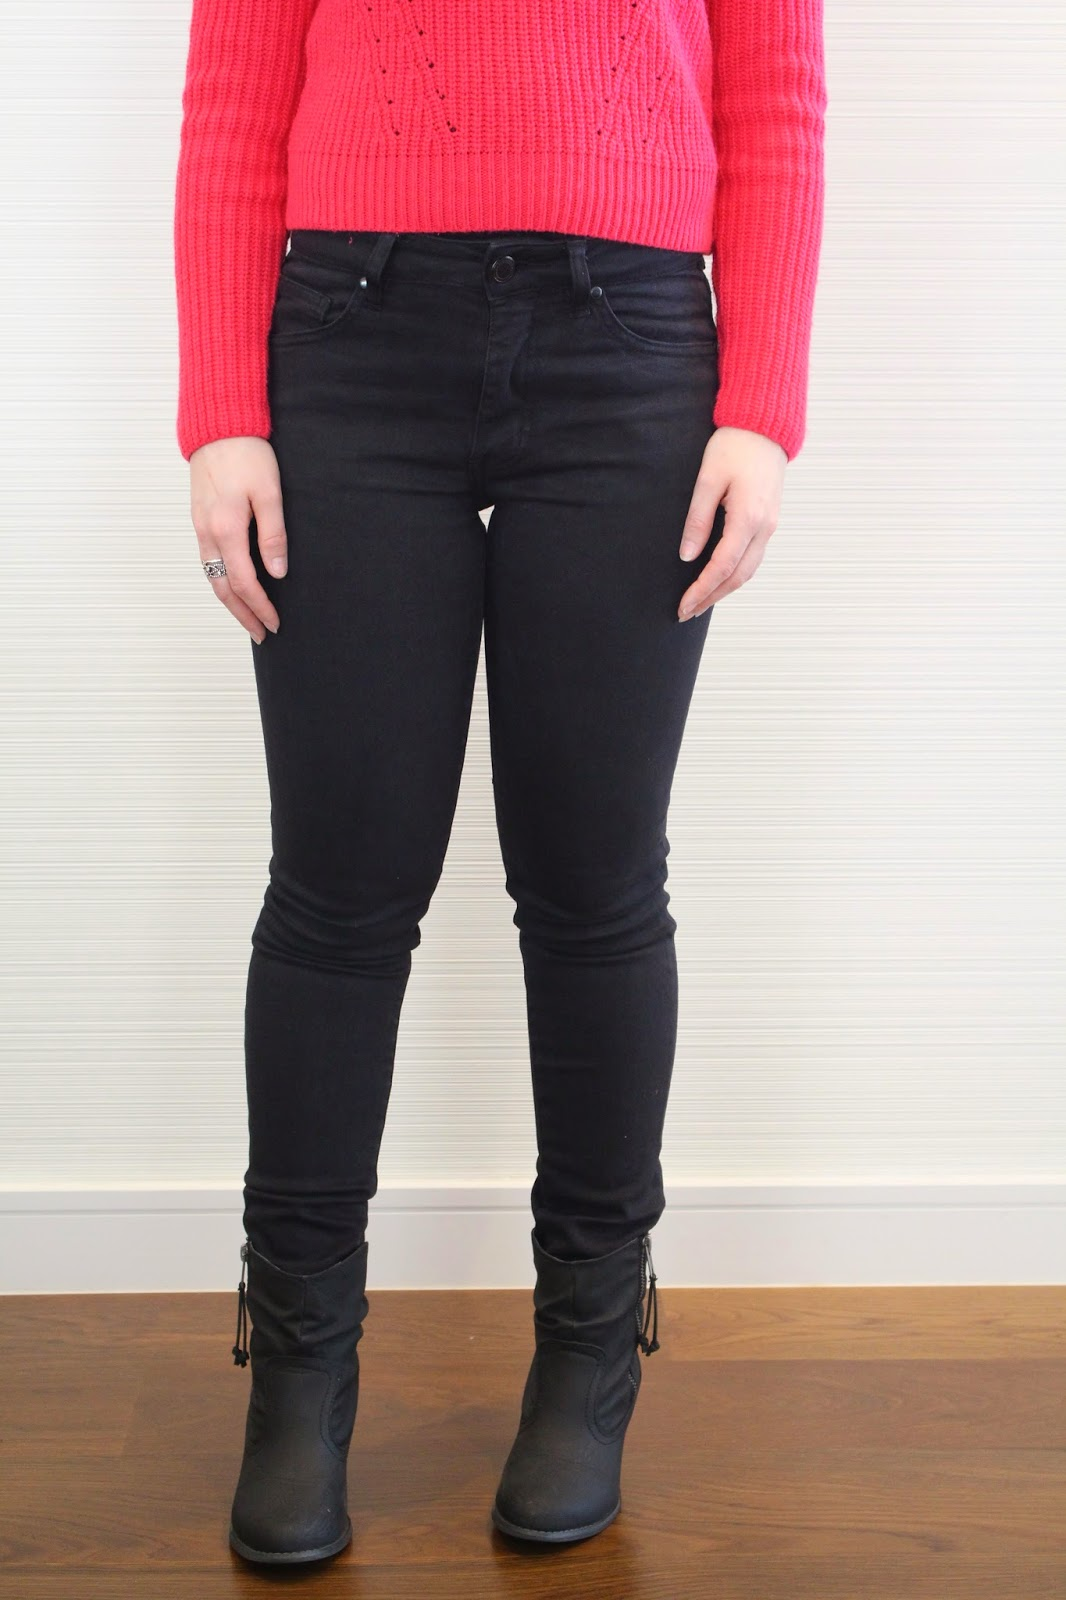 Black high waisted jeans, pink cropped sweater, black booties, embellished necklace, winter outfit, spring outfit, fall outfit, autumn outfit, everyday outfit, college outfit, uni outfit, petite girl outfit, jeans and sweater, black booties and high waisted jeans